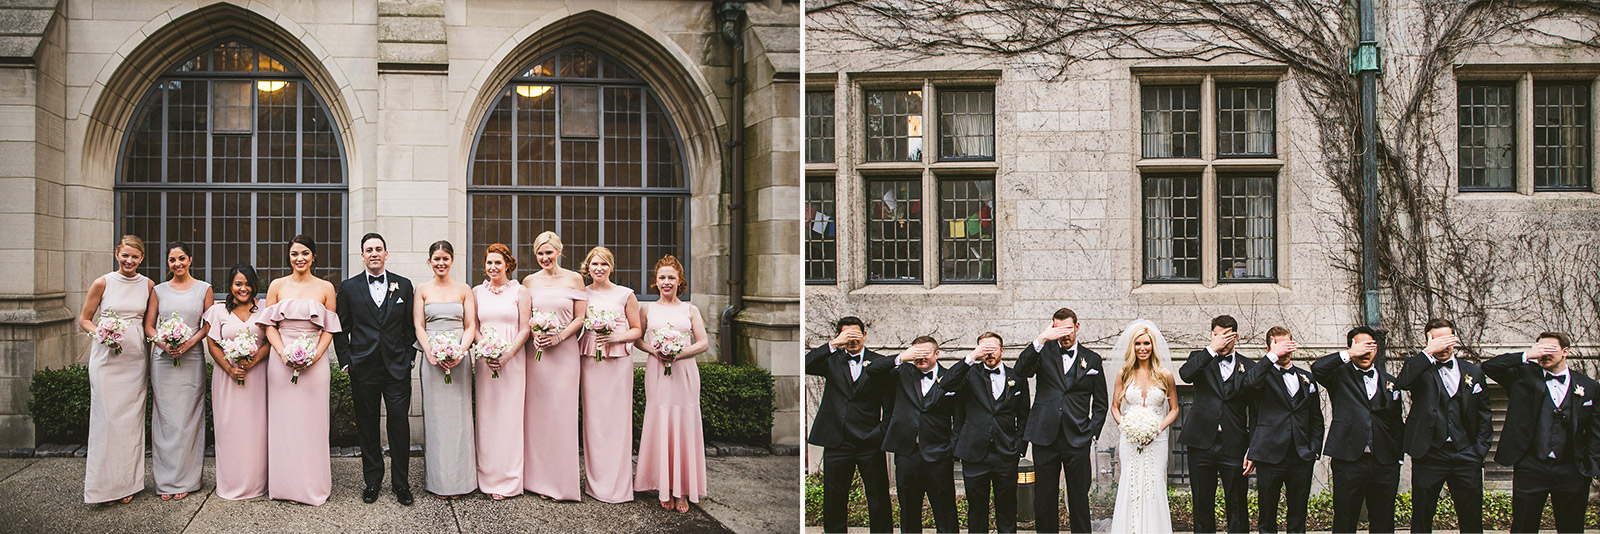 37 bridal party photos - Kayla + Terry // Drake Hotel Chicago Wedding Photos